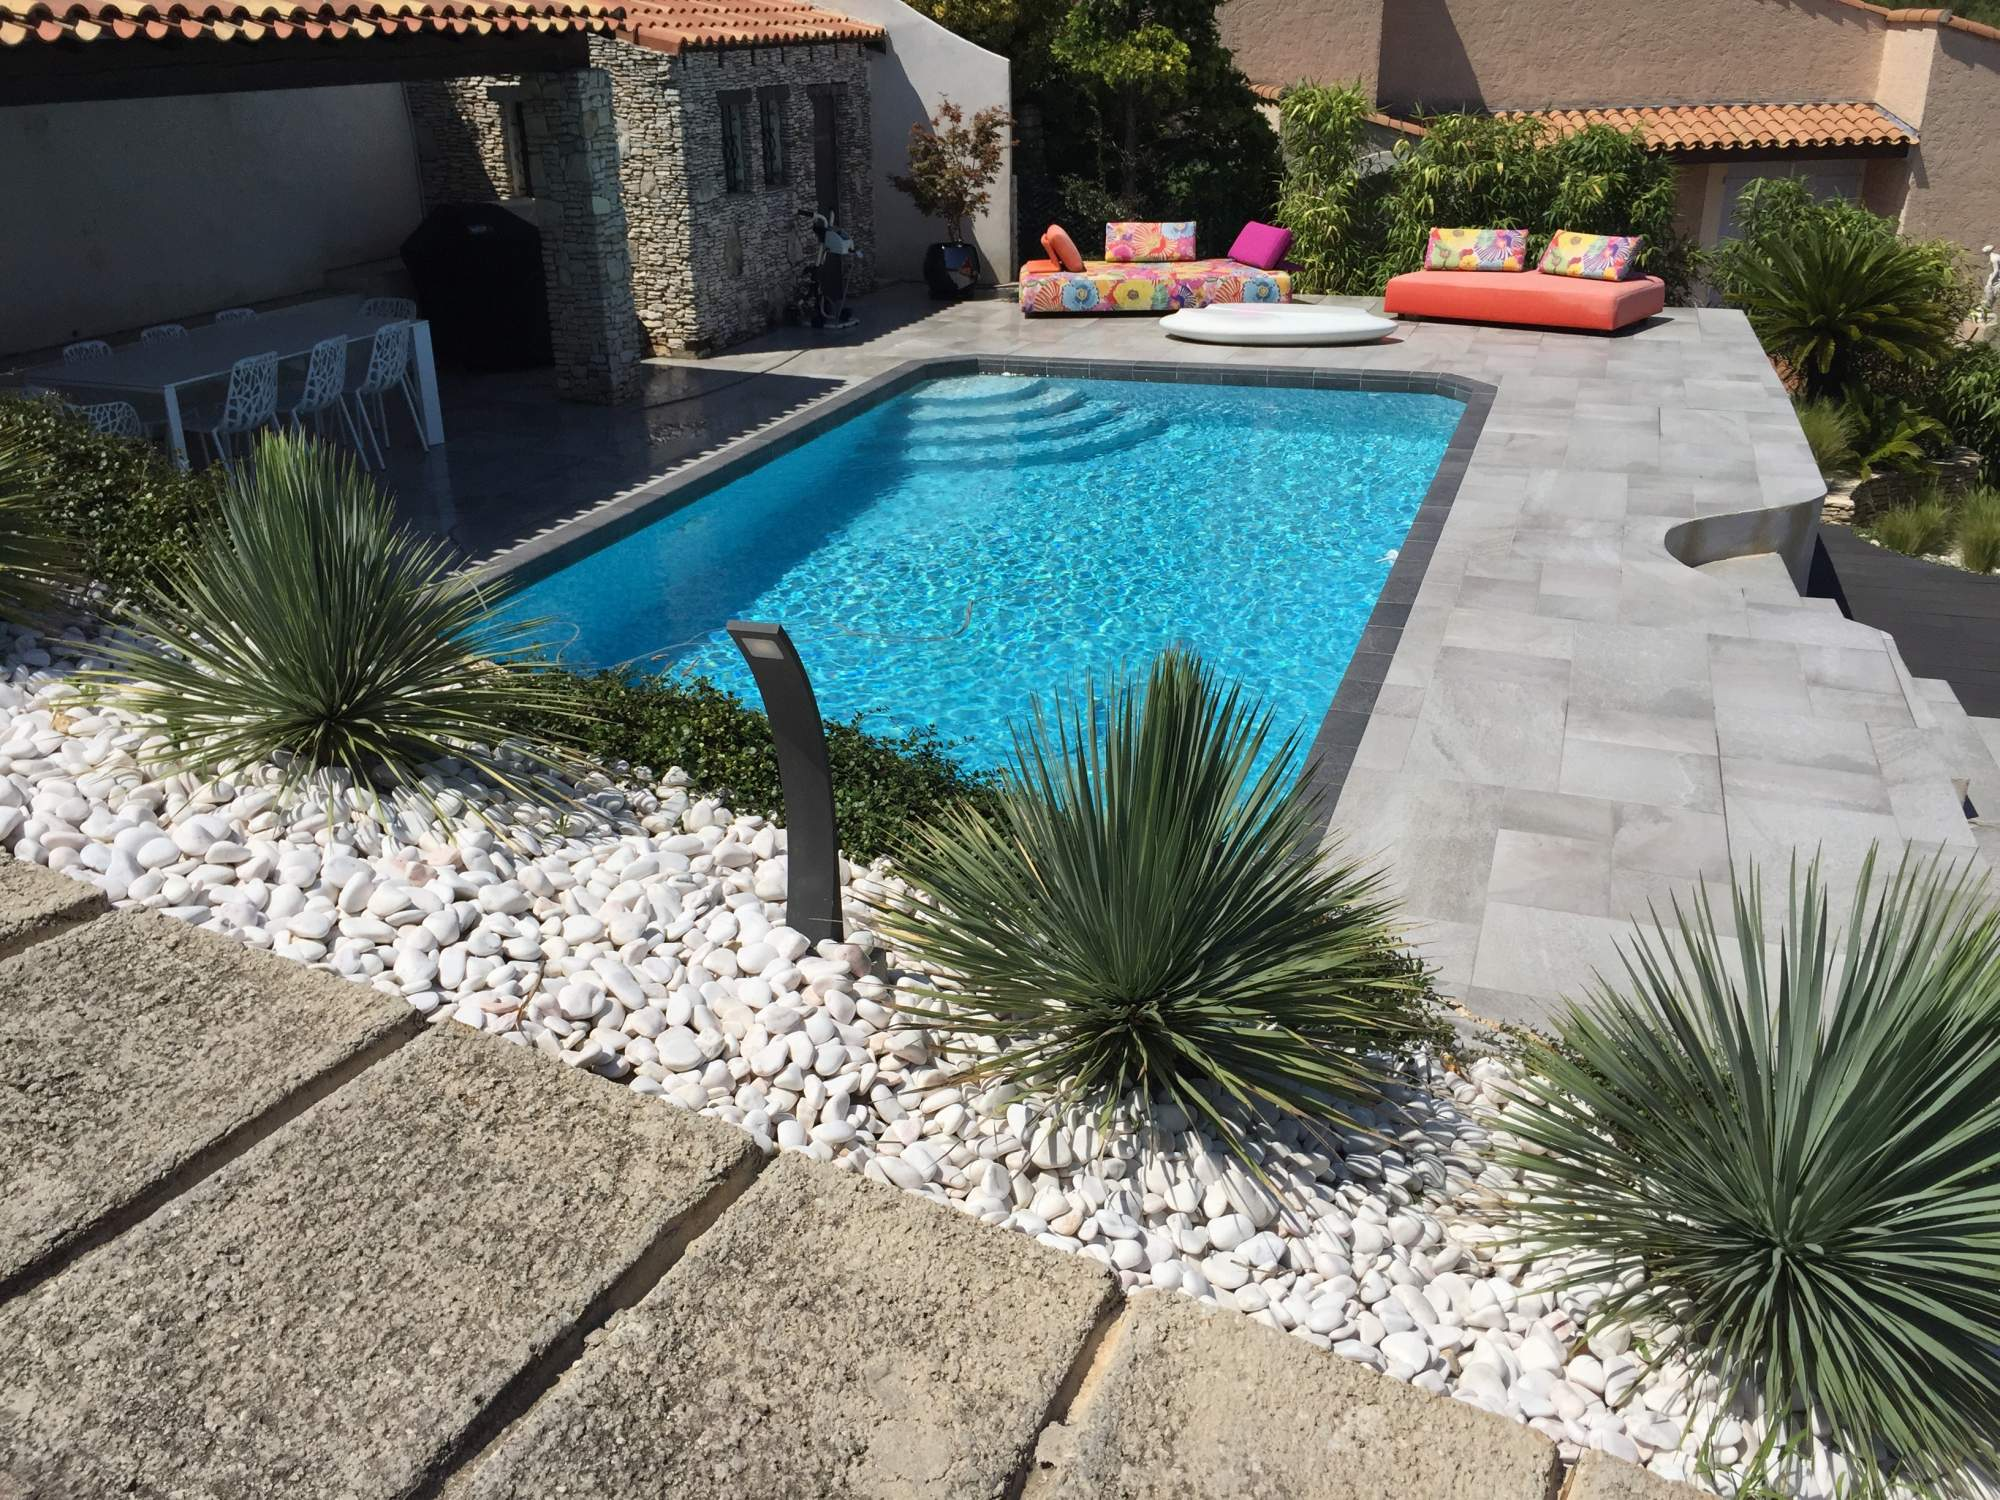 R novation d un contour de piscine et terrasses sur les for Carrelage interieur piscine